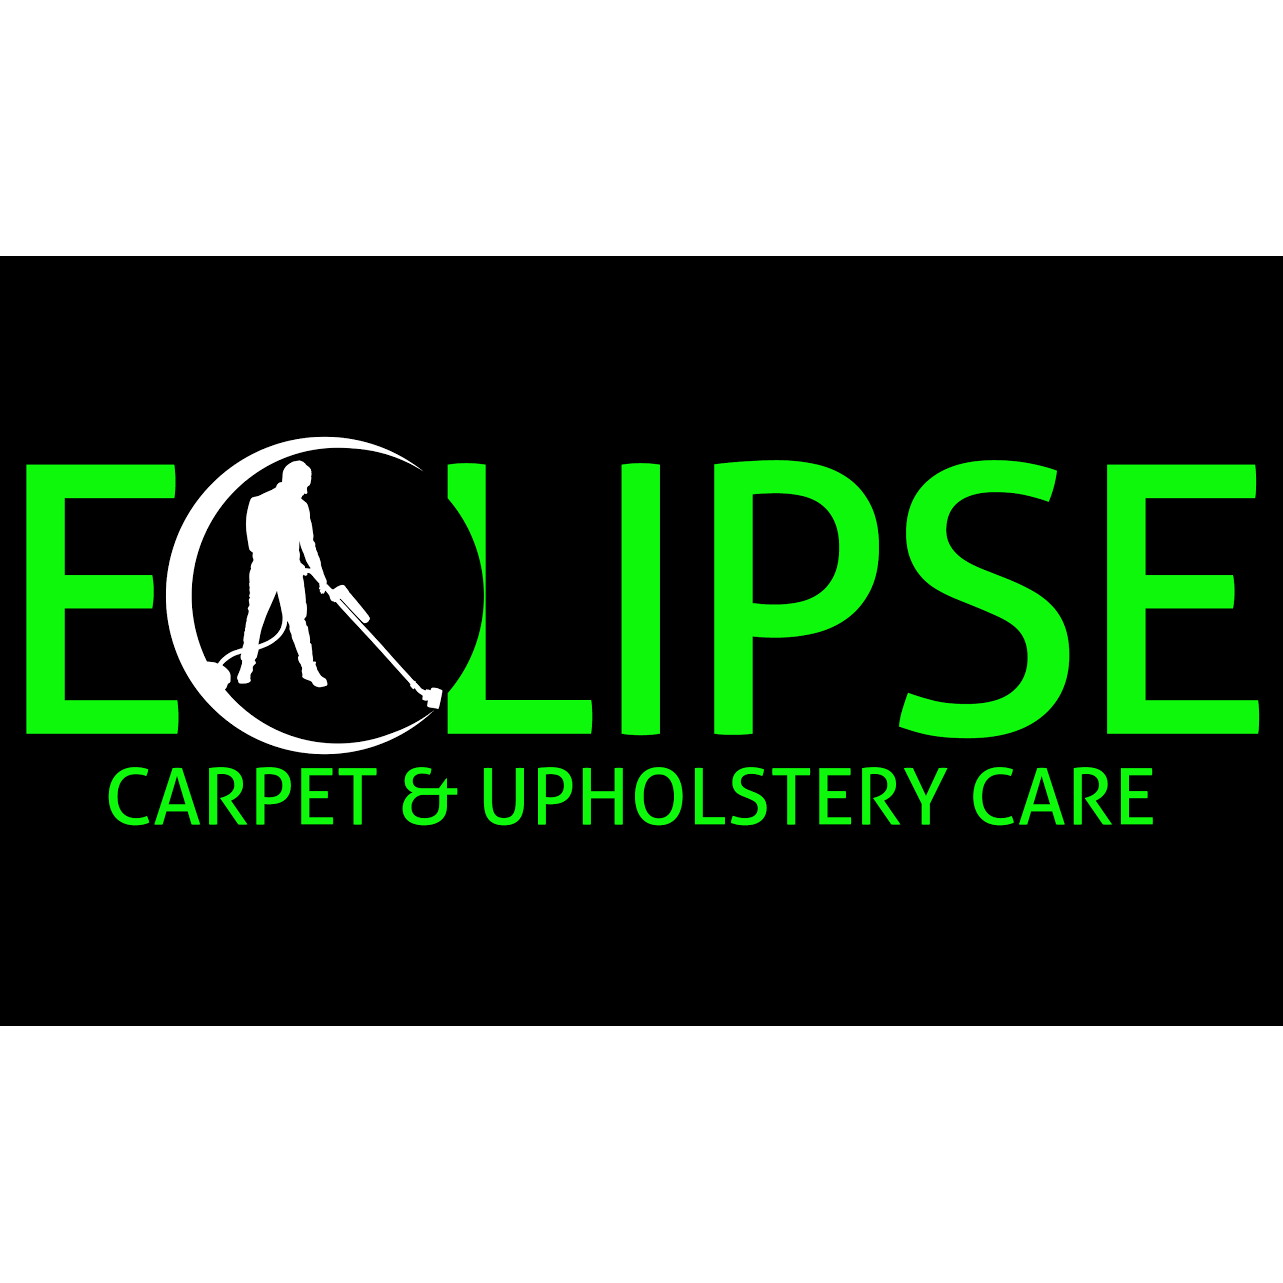 image of Eclipse Carpet & Upholstery Care LLC